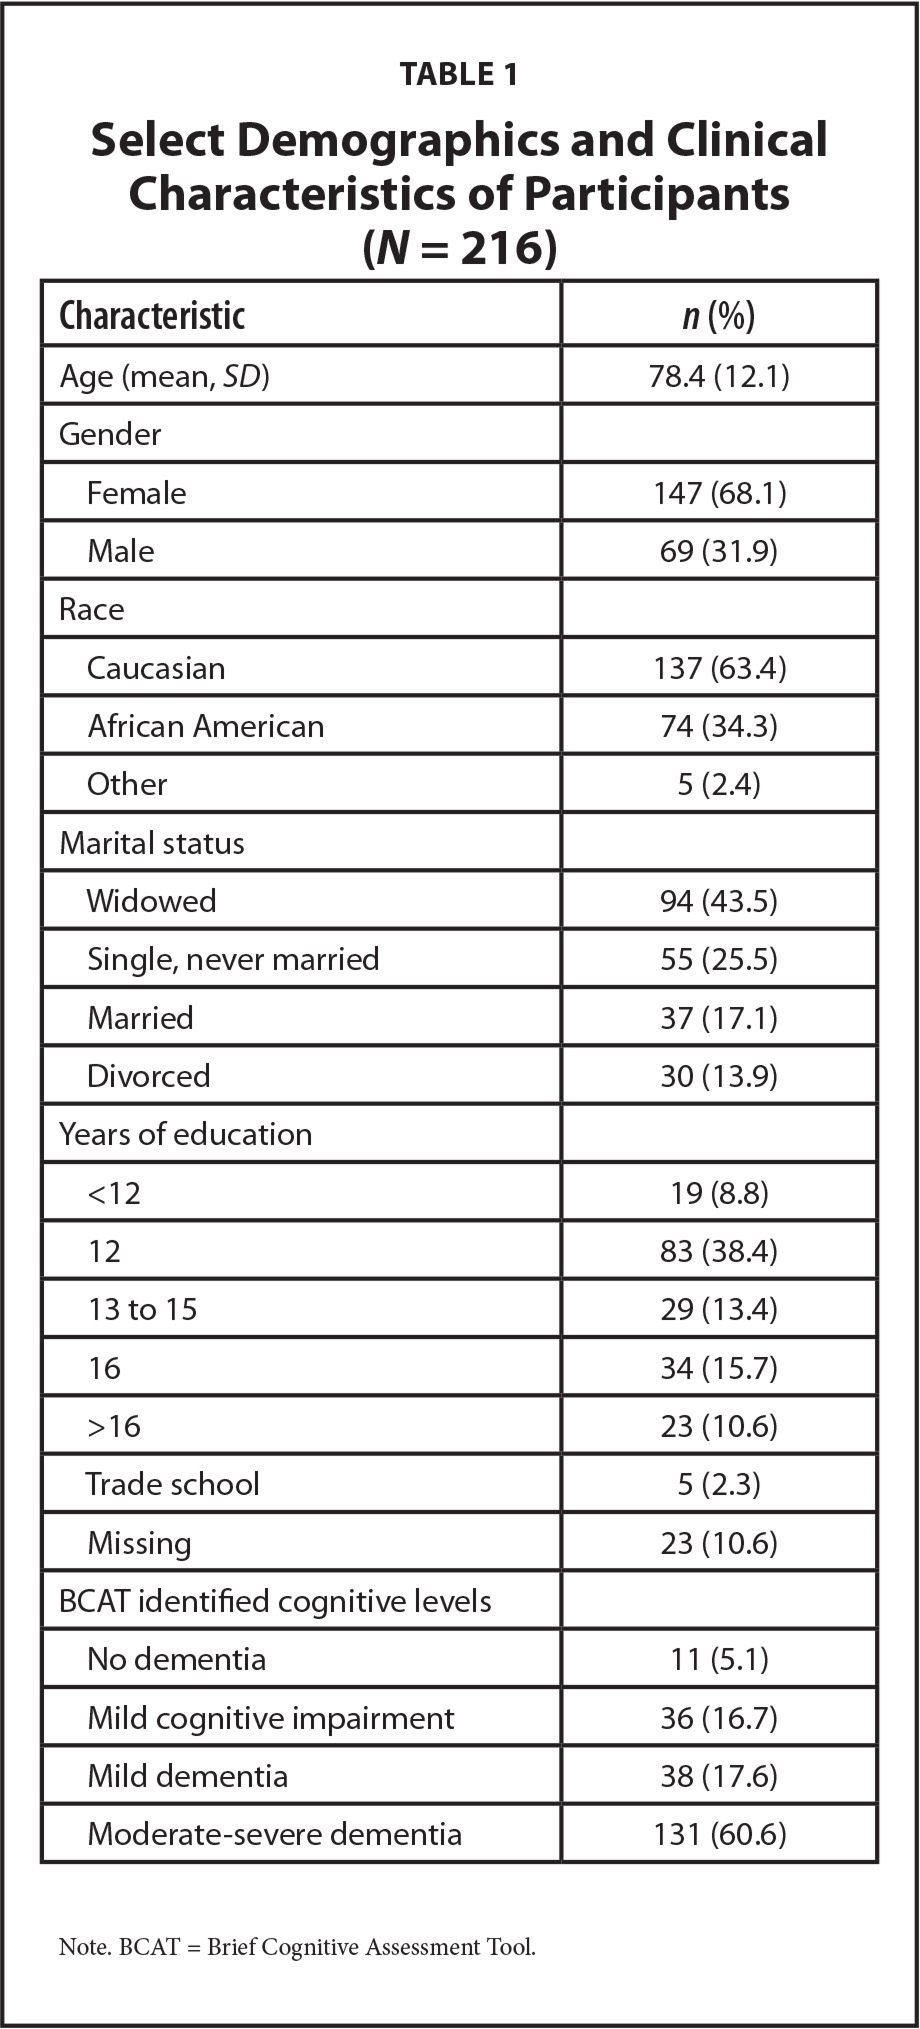 Select Demographics and Clinical Characteristics of Participants (N = 216)